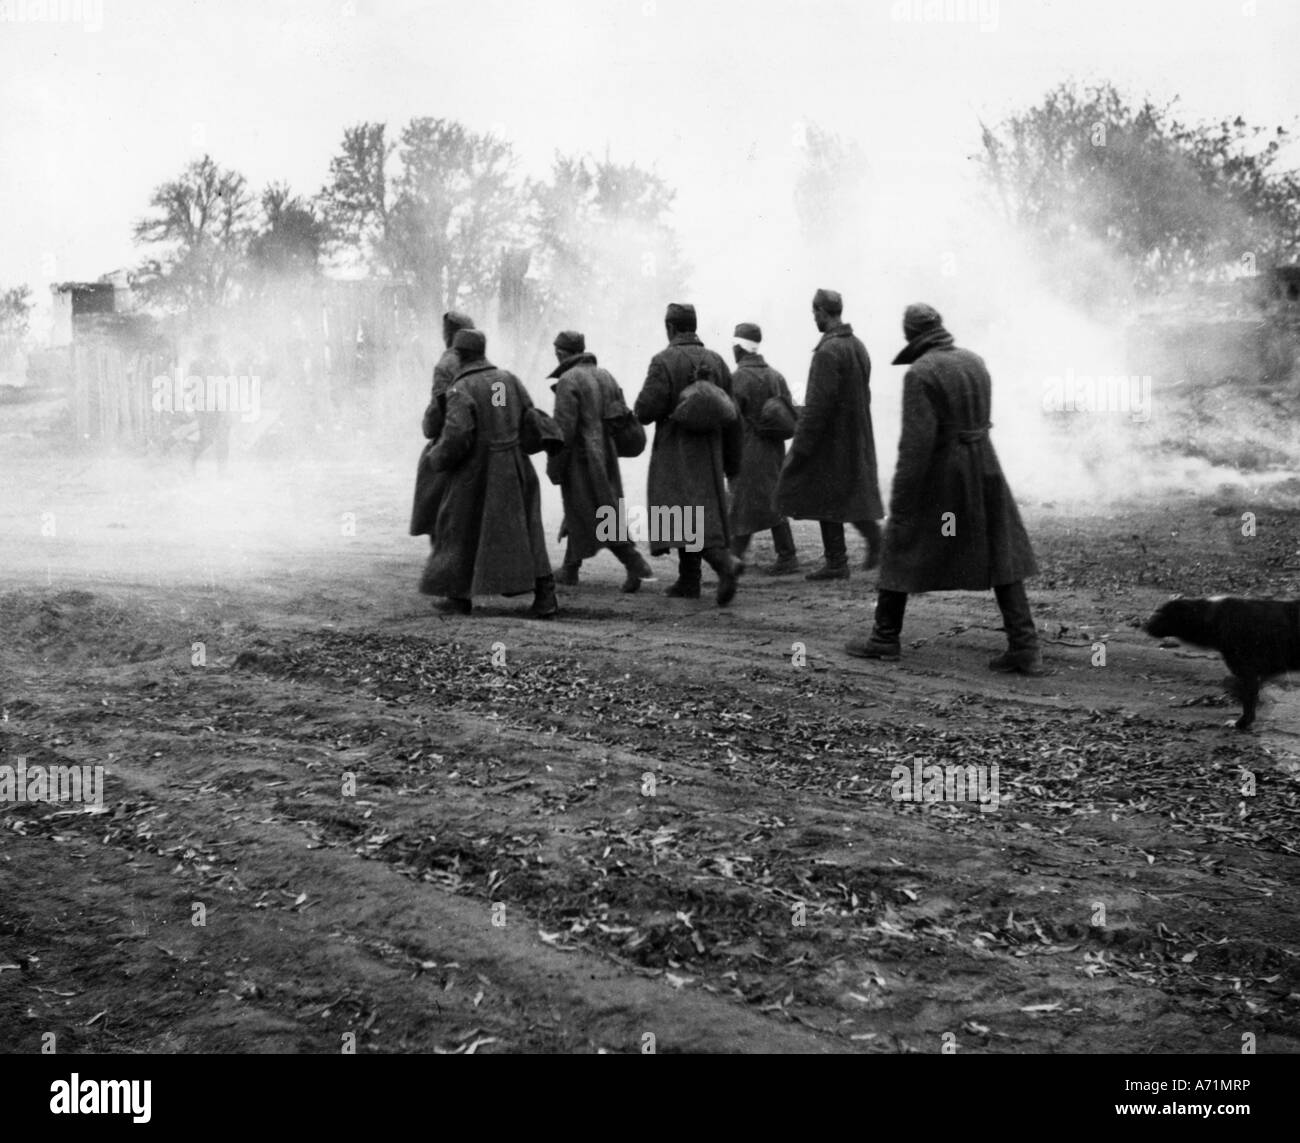 events, Second World War / WWII, prisoners of war, Russia, captured Soviet soldiers, 1941, Additional-Rights-Clearances - Stock Image